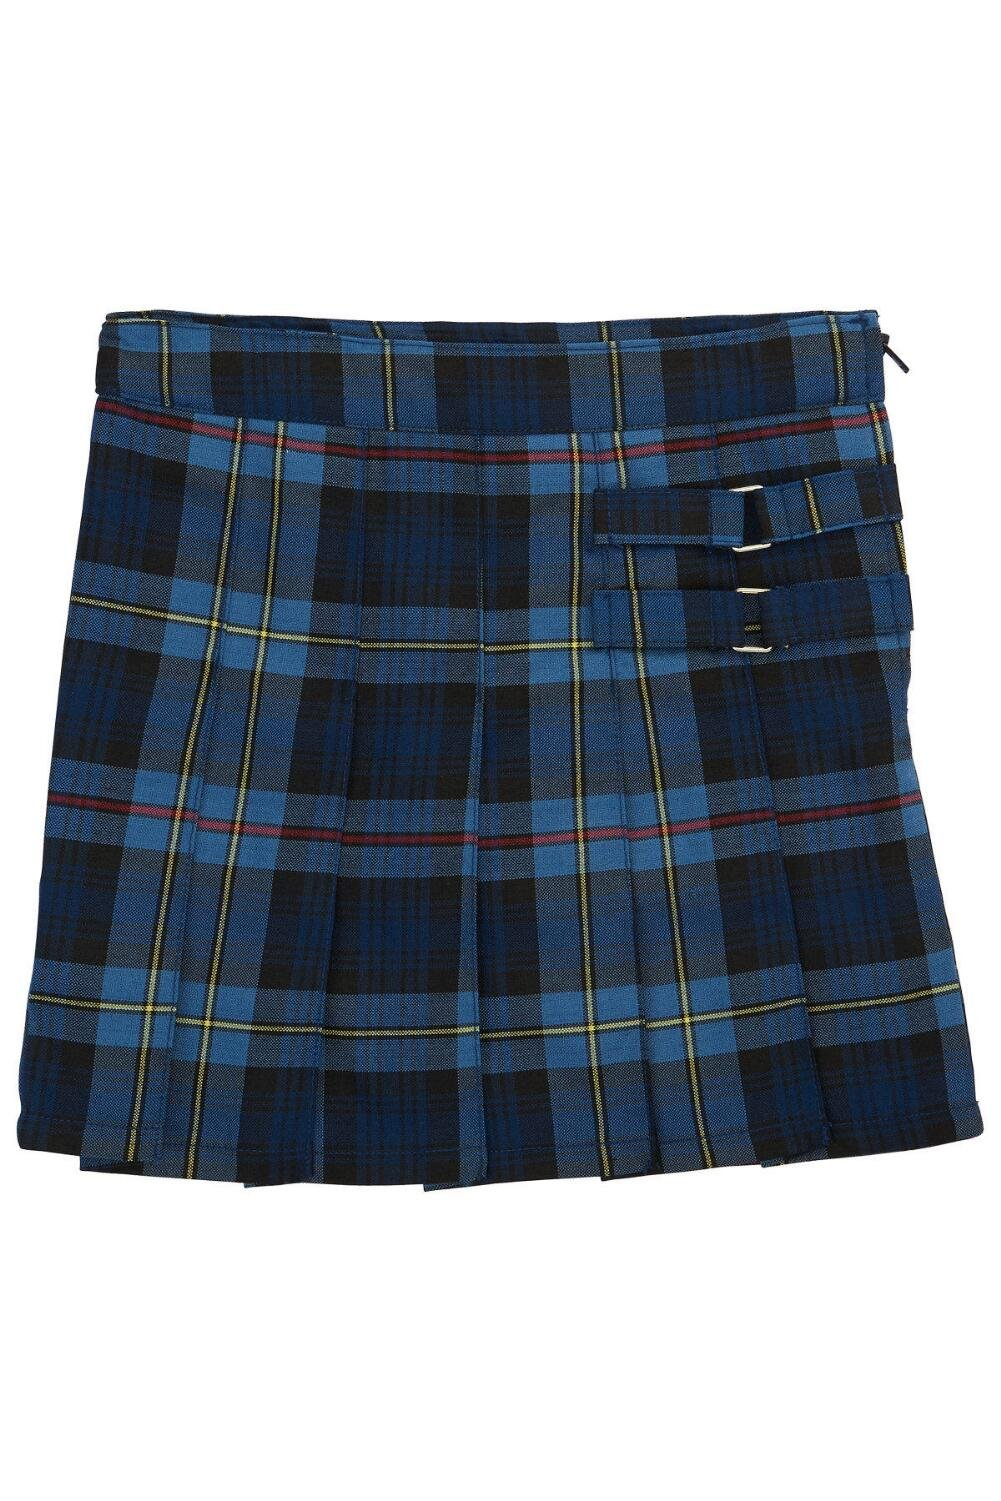 French Toast Little Girls' Plaid Pleated Scooter, Navy Red Plaid, 6